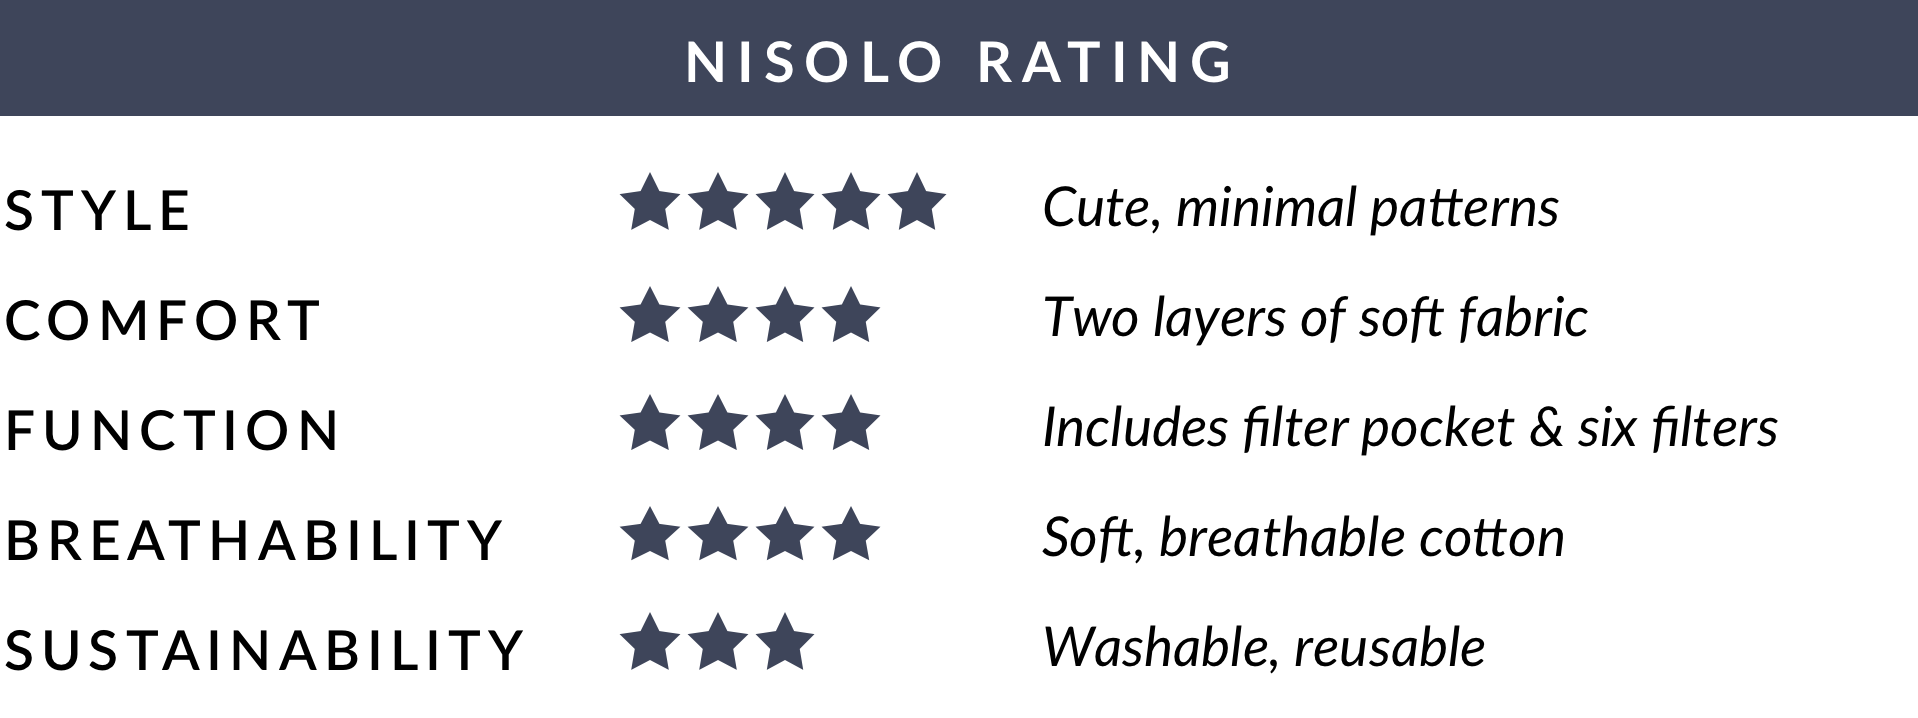 Nisolo Rating of Alex + Nova Filtered Patterned Mask - Beige - (3) Pack - Average of 4 out of 5 stars